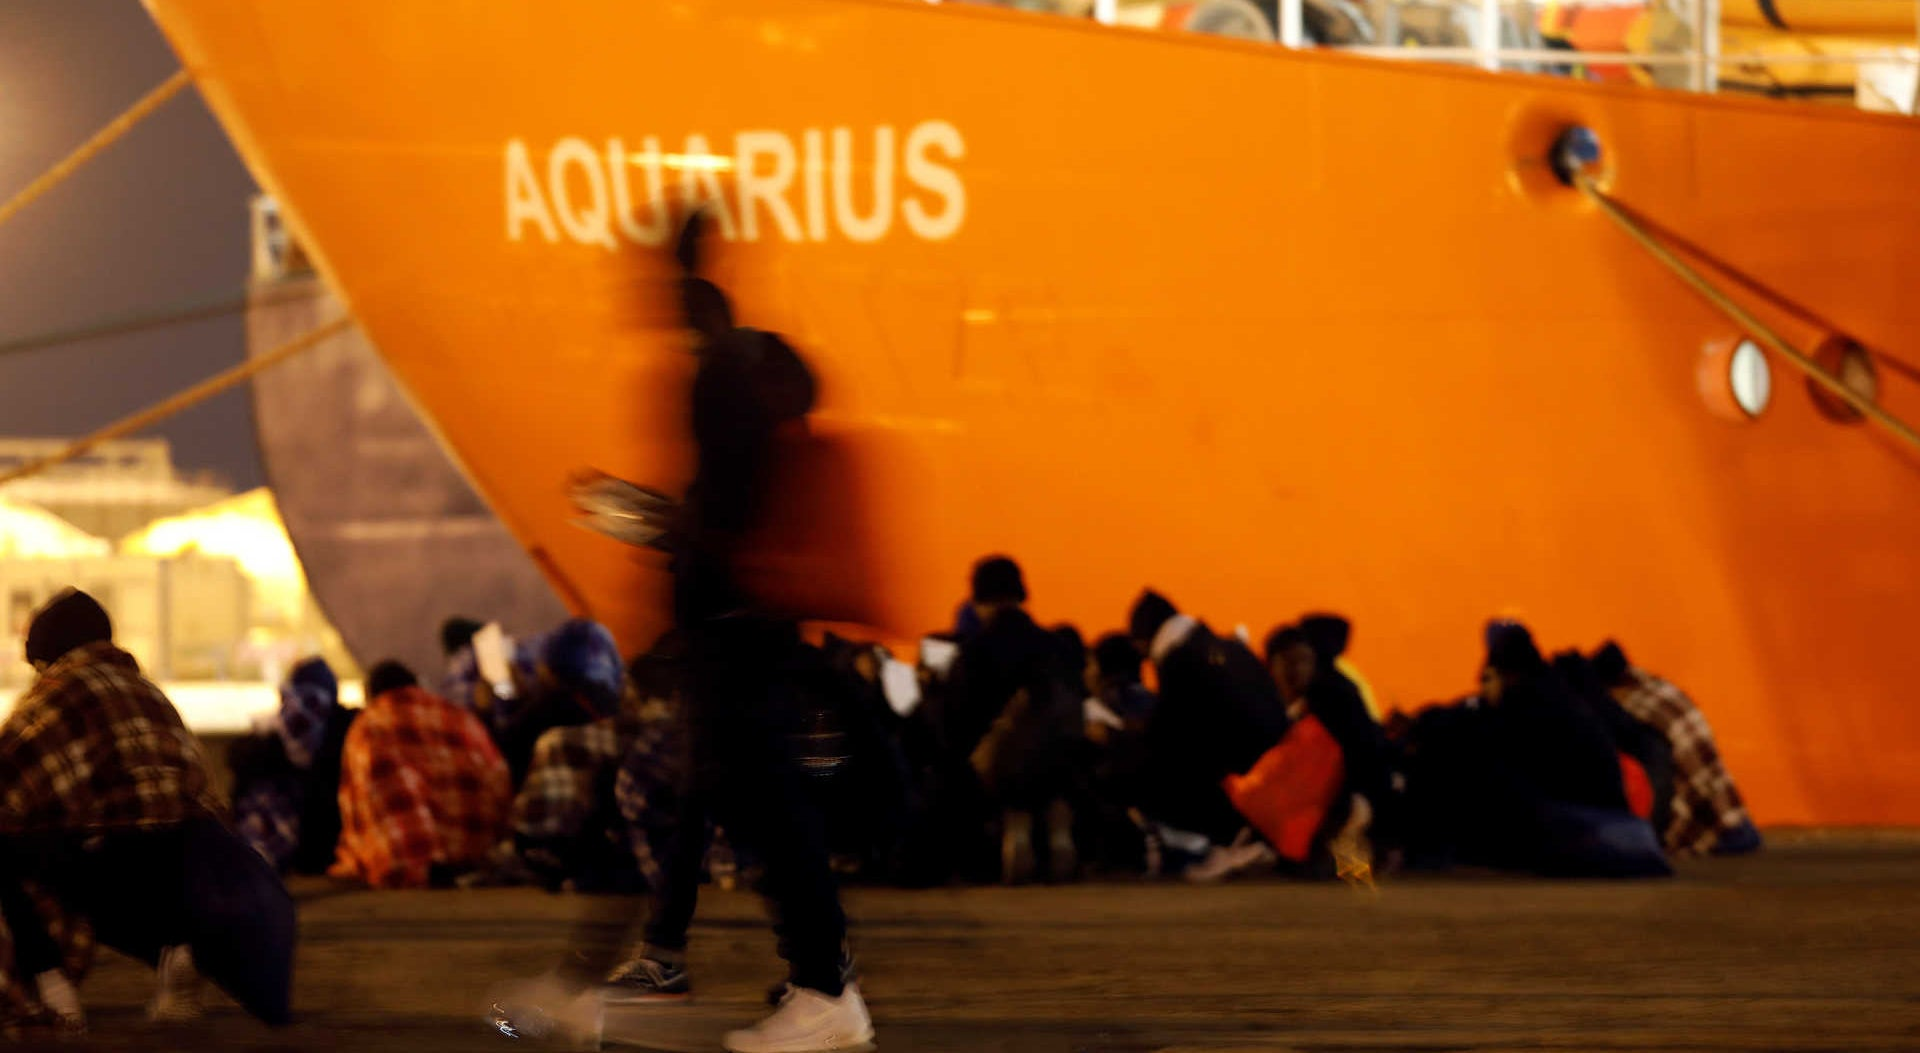 Portugal acolhe 19 refugiados do navio Aquarius